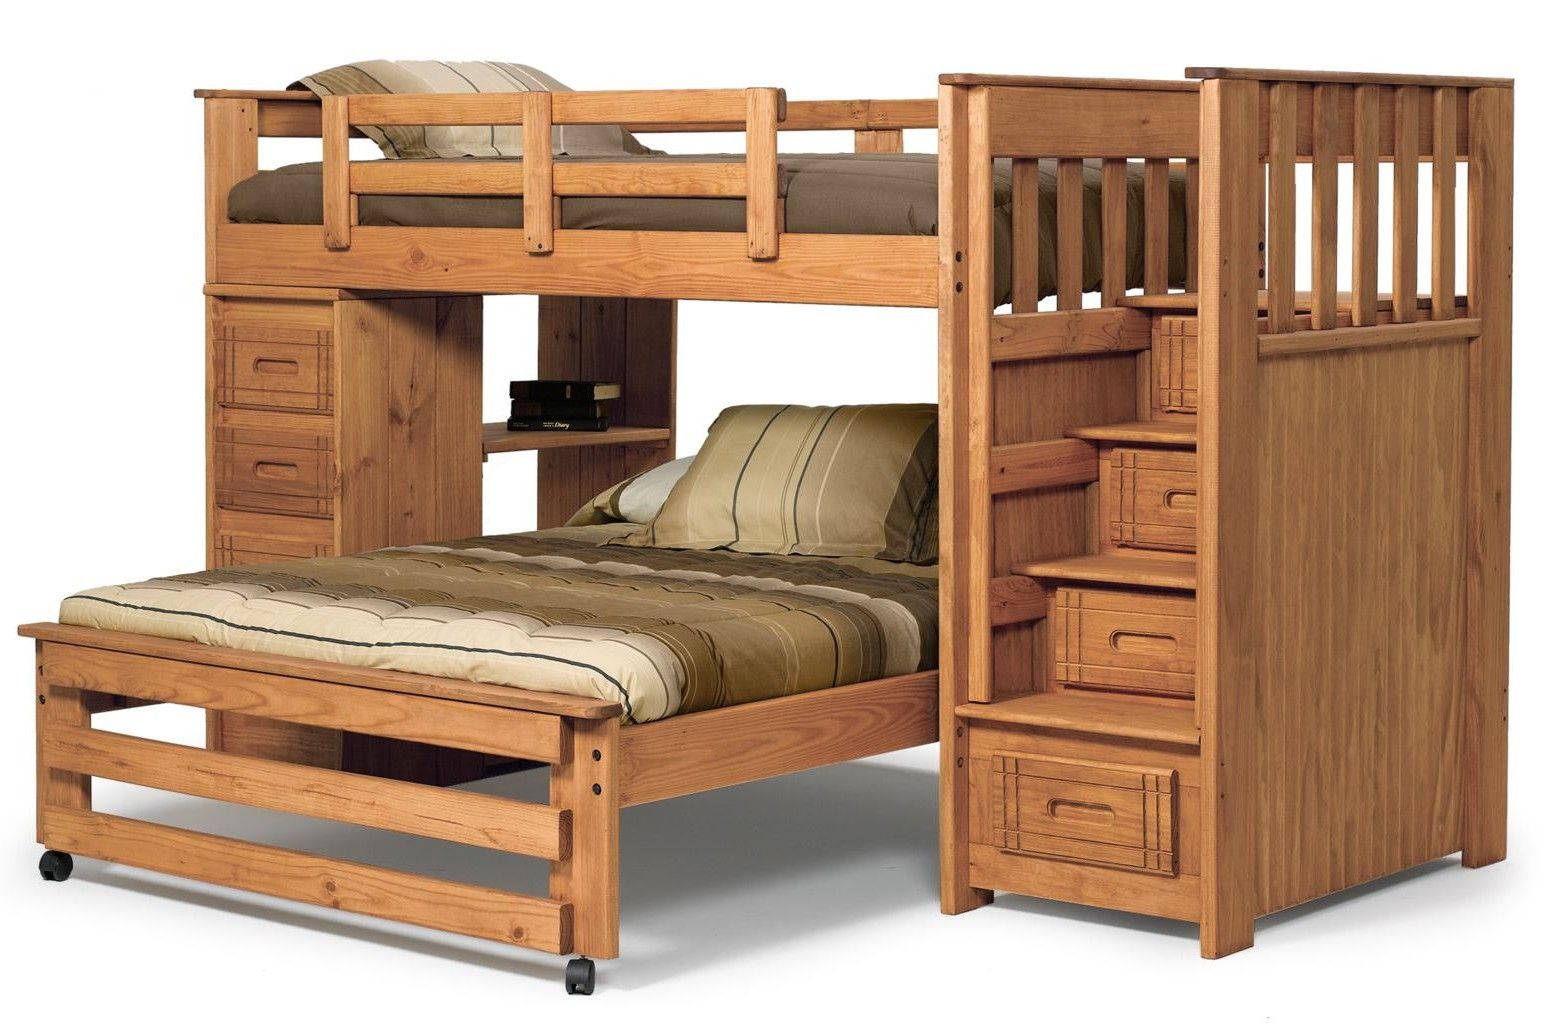 21 top wooden lshaped bunk beds with spacesaving